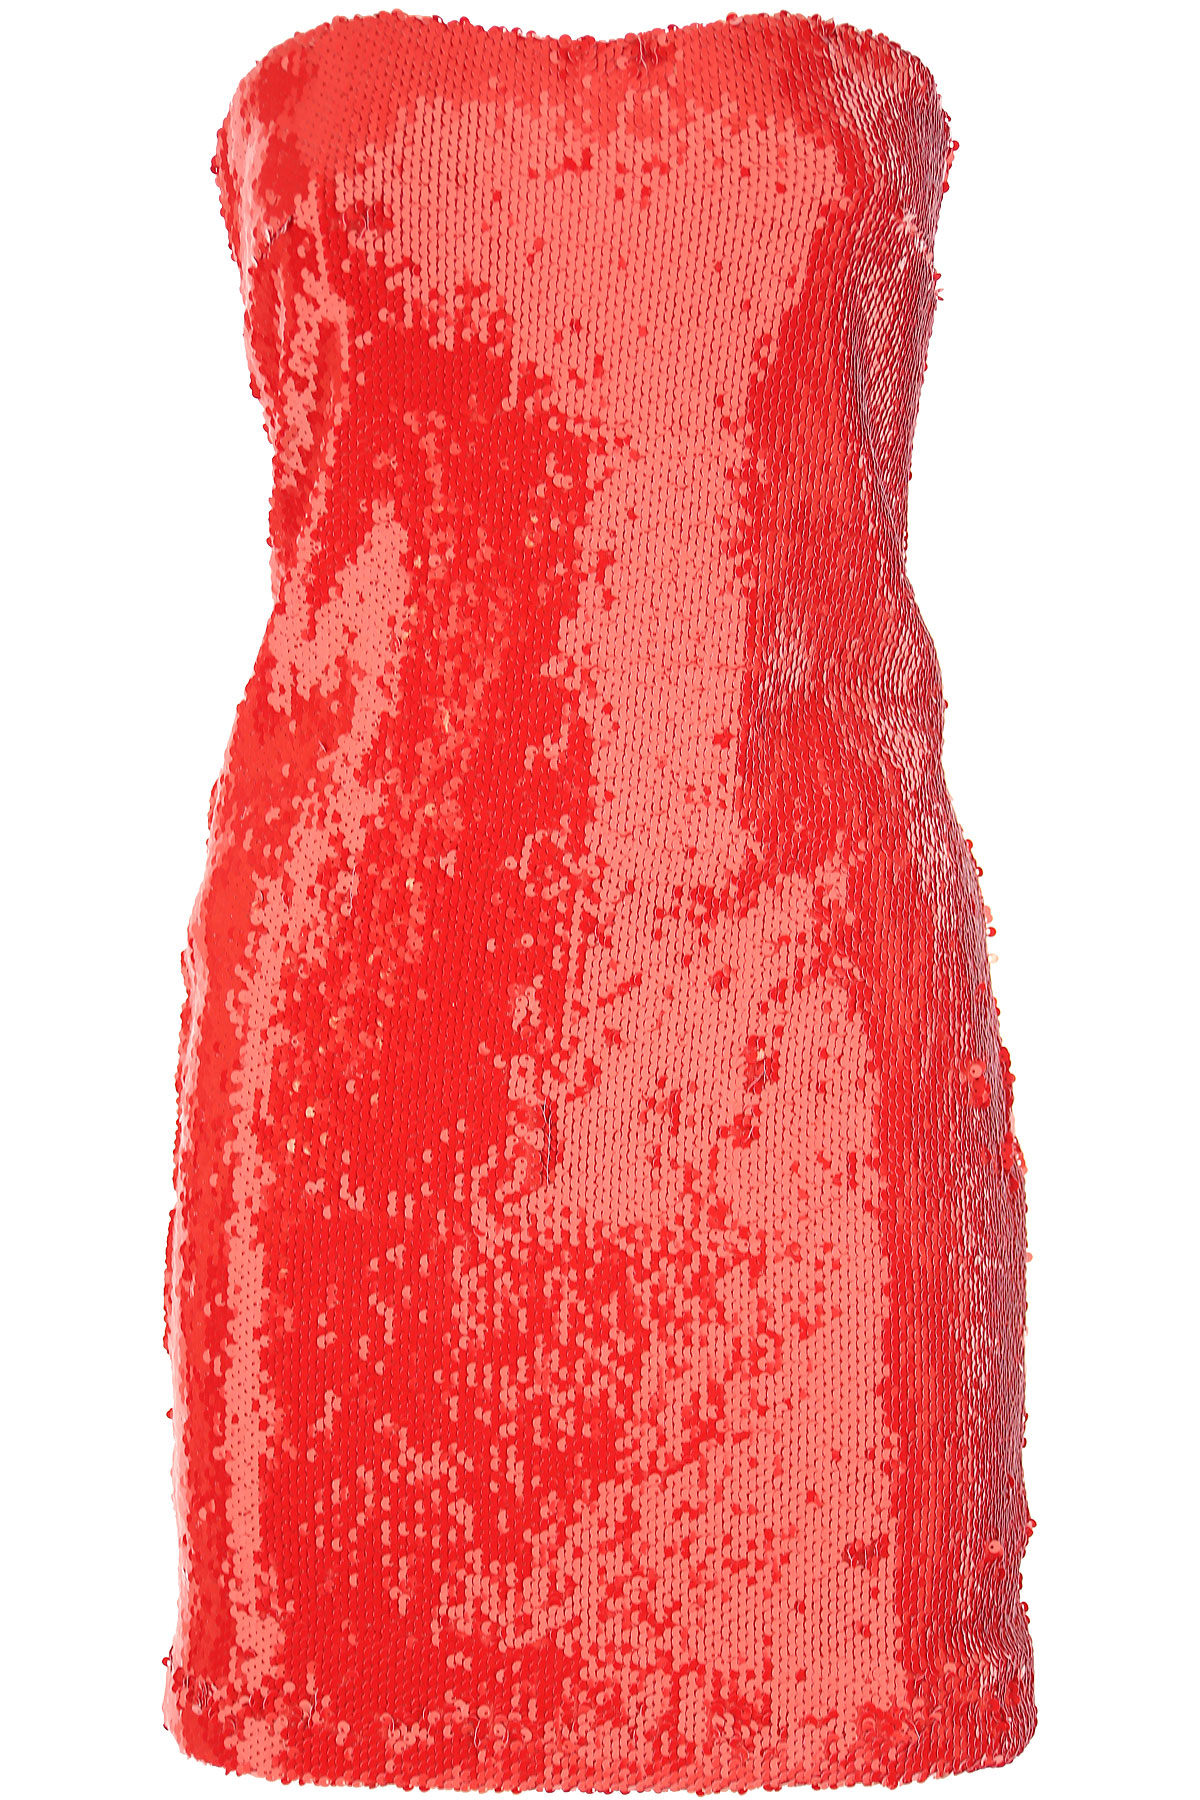 Dondup Dress for Women, Evening Cocktail Party On Sale, Red, polyestere, 2019, 2 4